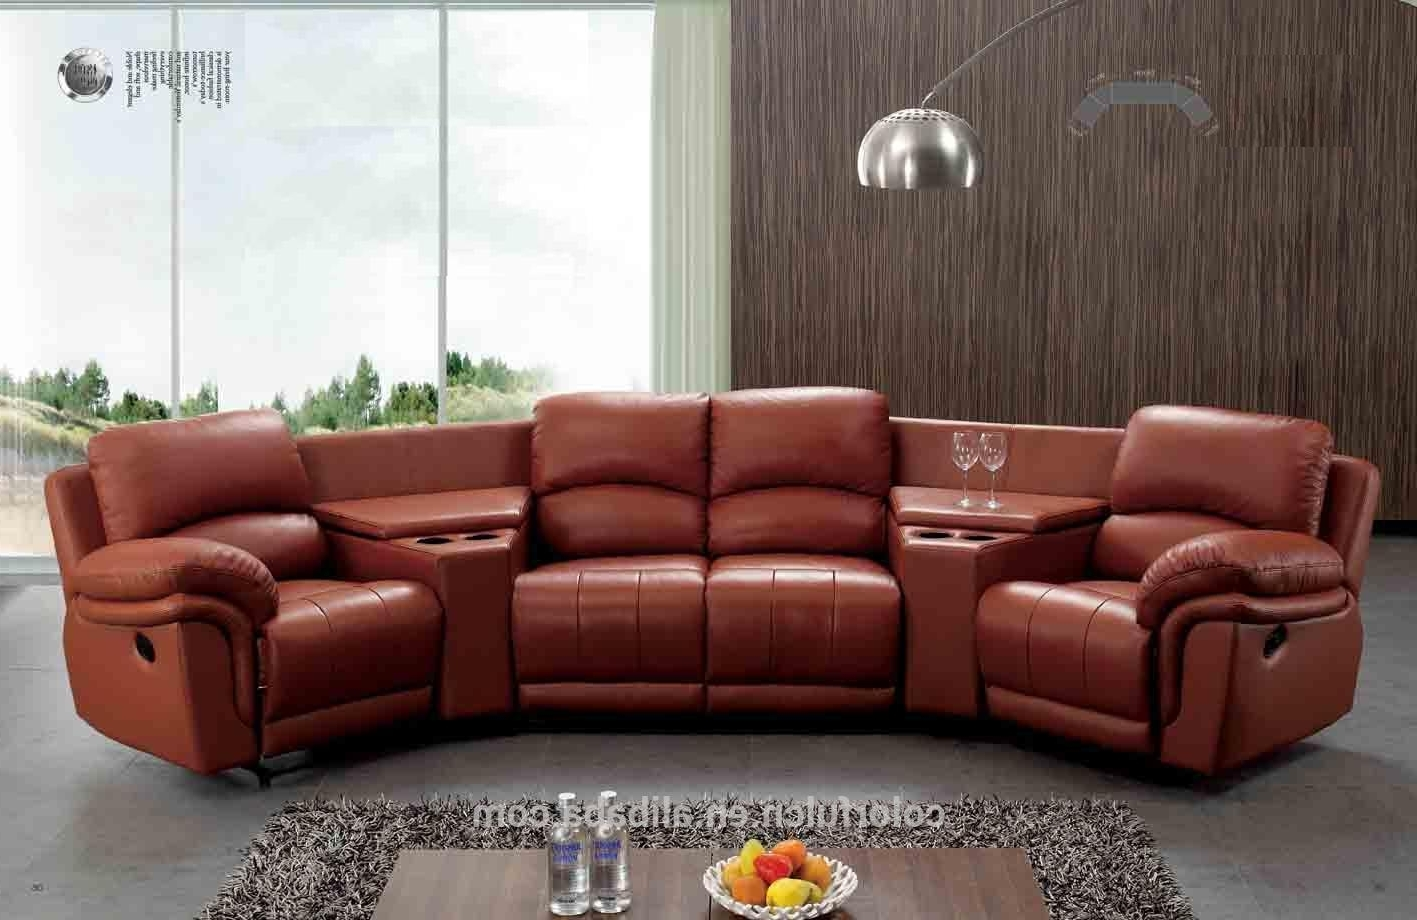 Most Current Sectional Sofa Design: Semi Circular Sectional Sofa Couches Round Regarding Curved Sectional Sofas With Recliner (View 12 of 15)